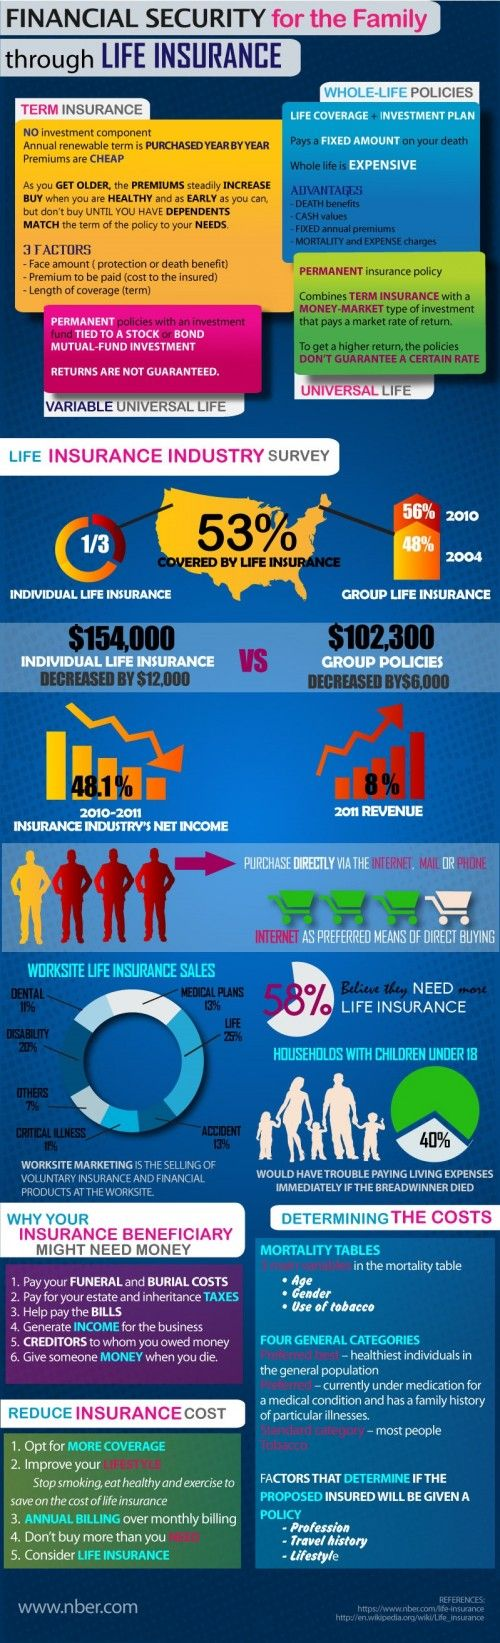 All About Life Insurance – Infographic on http://www.bestinfographic.co.uk